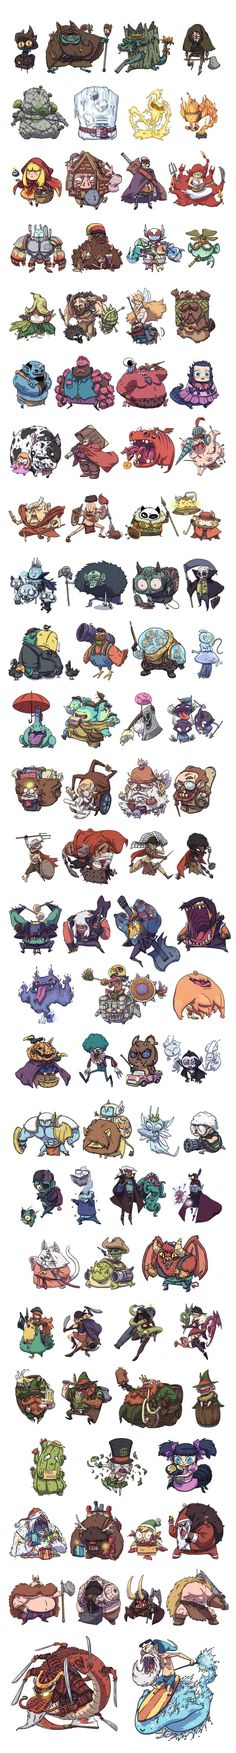 Character designs compilation by BattlePeach on DeviantArt ★ || CHARACTER DESIGN REFERENCES • Find us on www.facebook.com/CharacterDesignReferences and www.pinterest.com/characterdesigh Remember that you can join our community on www.facebook.com/groups/CharacterDesignChallenge and participate to our monthly Character Design contest || ★: